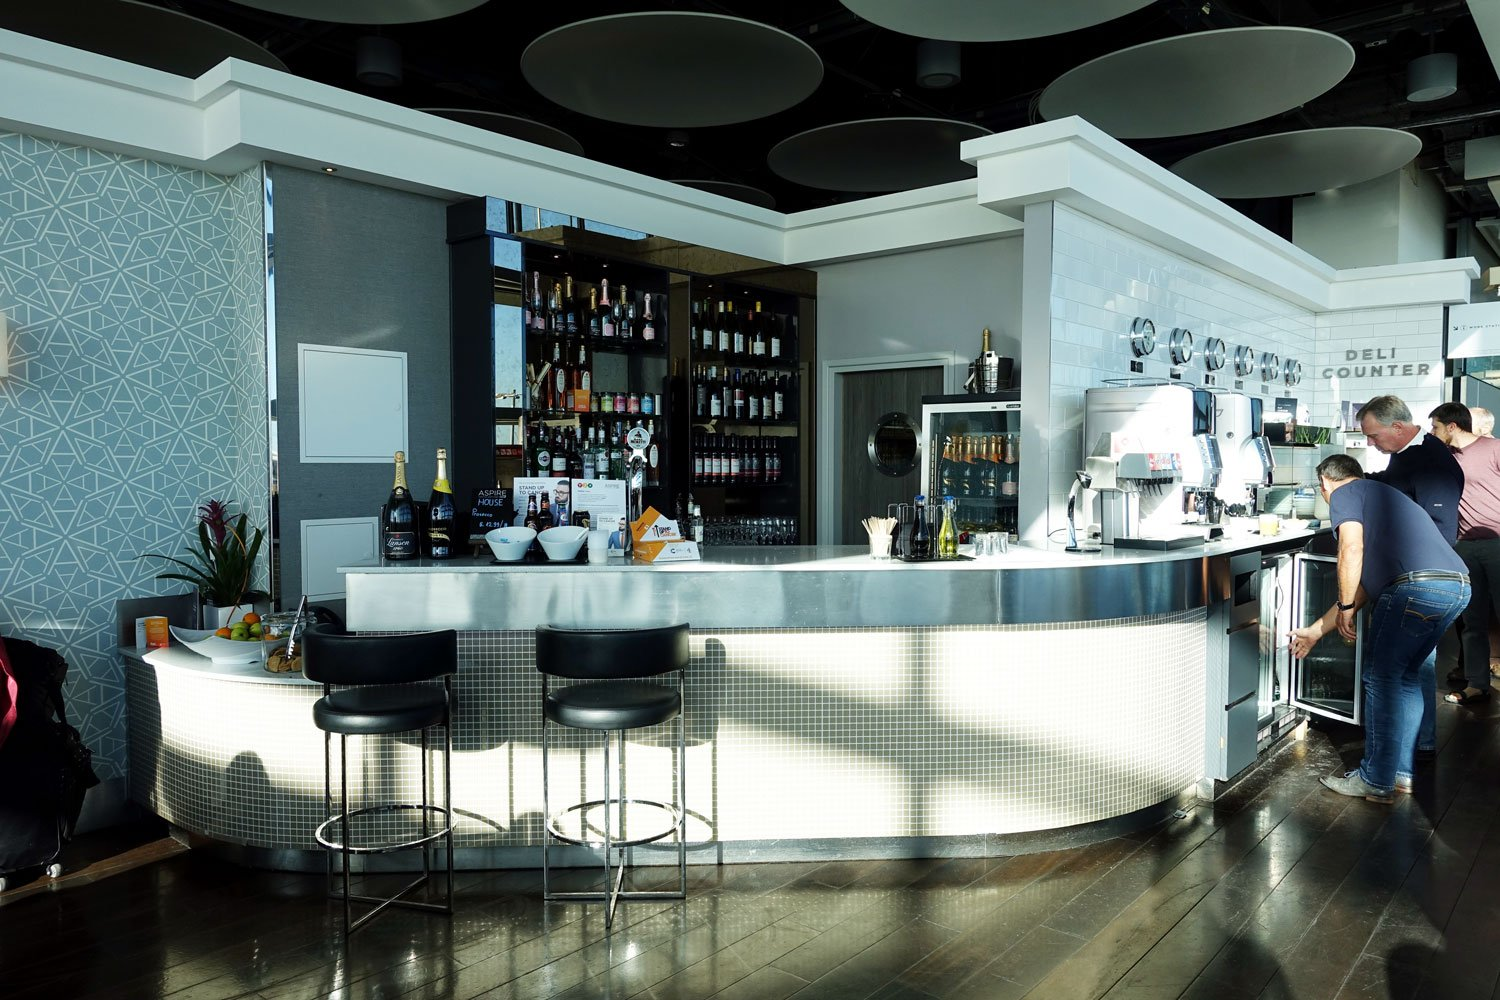 aspire lounge and spa heathrow londonheathrow priority pass lounge - aspire lounge and spa